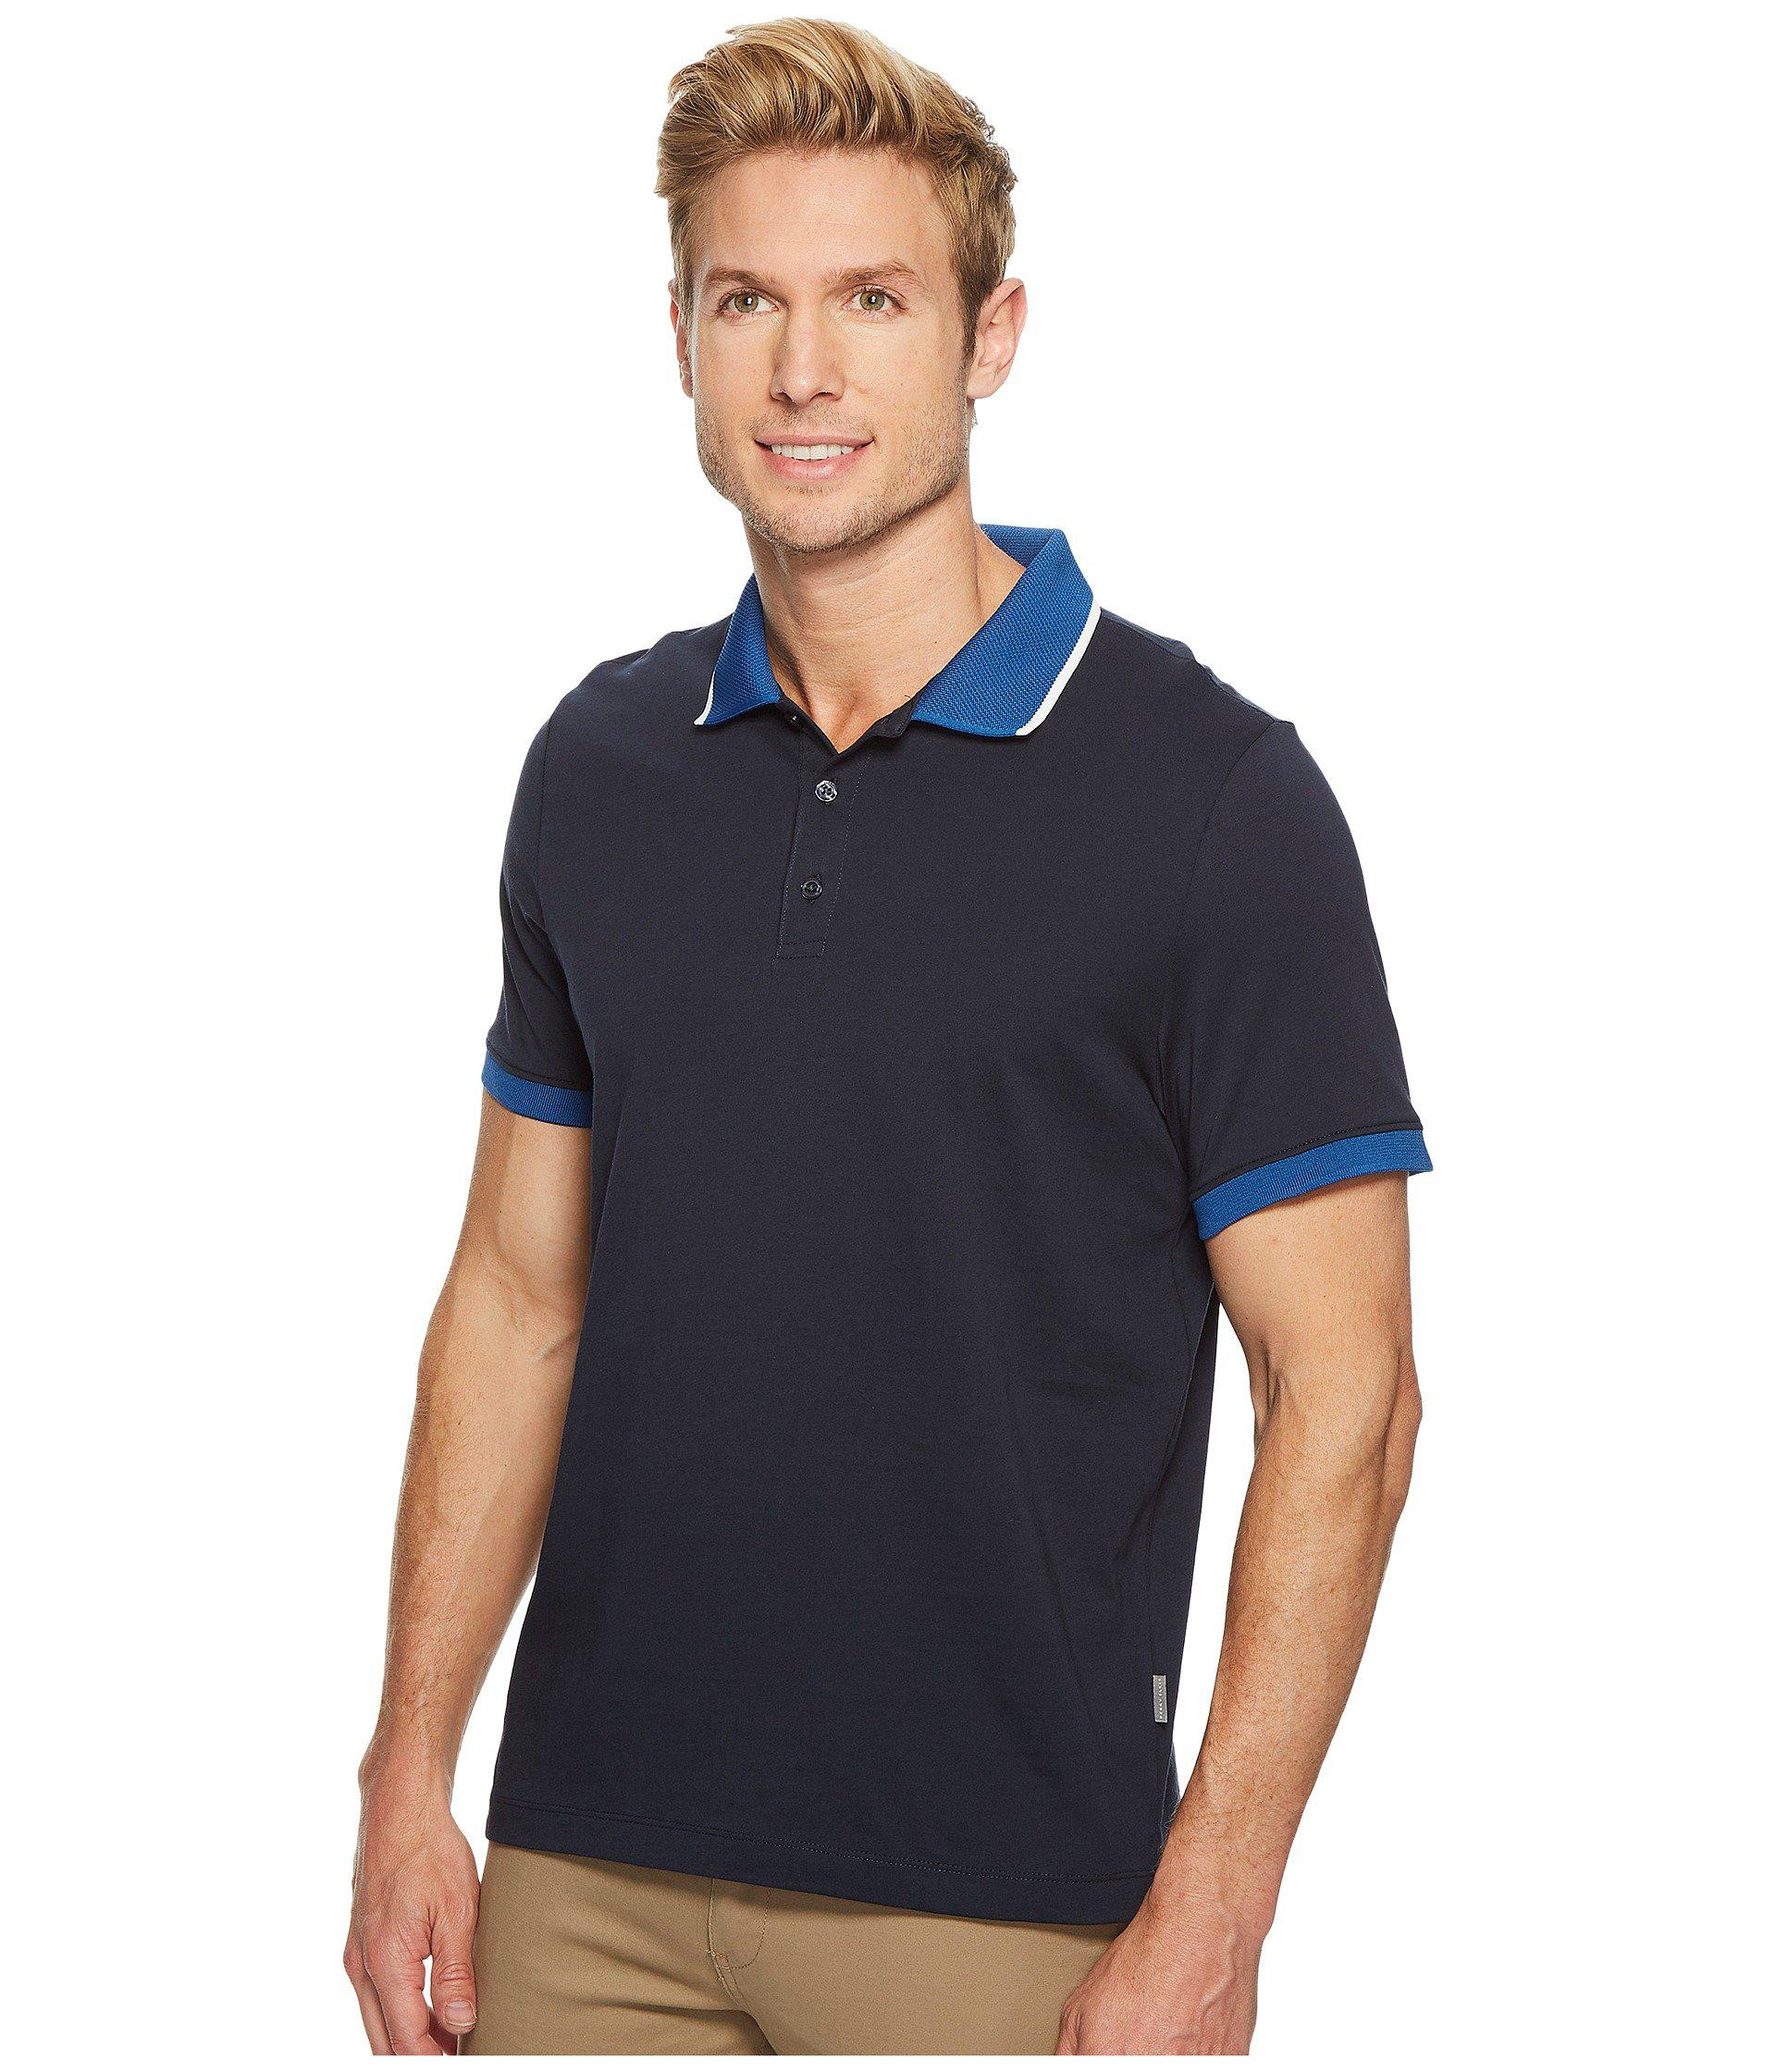 be97faf241 Lyst - Perry Ellis Tipped Collar Pima Cotton Polo (dark Sapphire) Men s  Clothing in Blue for Men